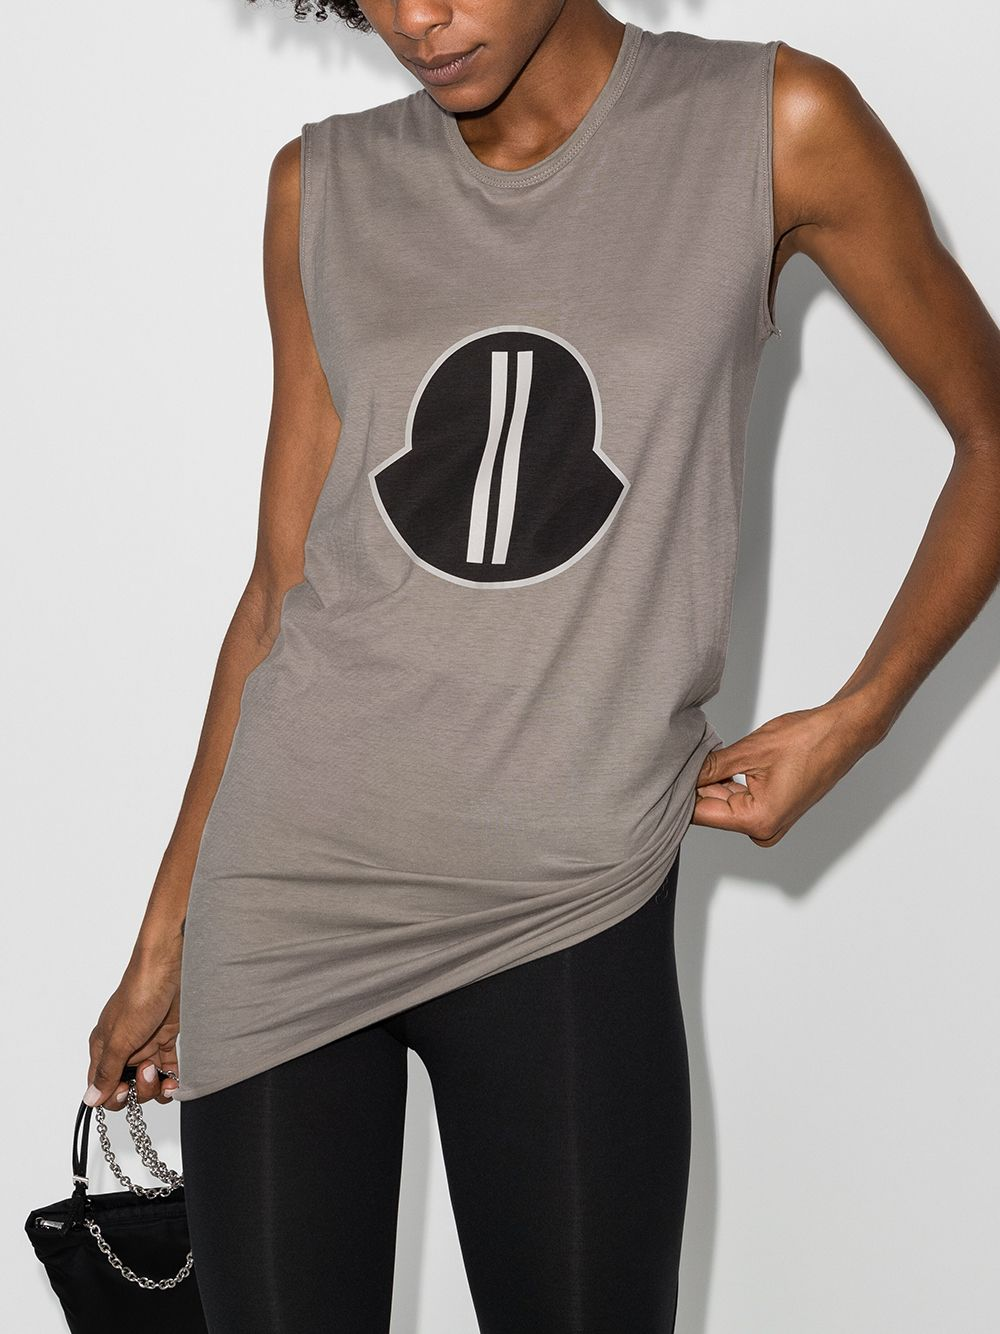 MONCLER + RICK OWENS UNISEX SLEEVELESS MUSCLE TEE